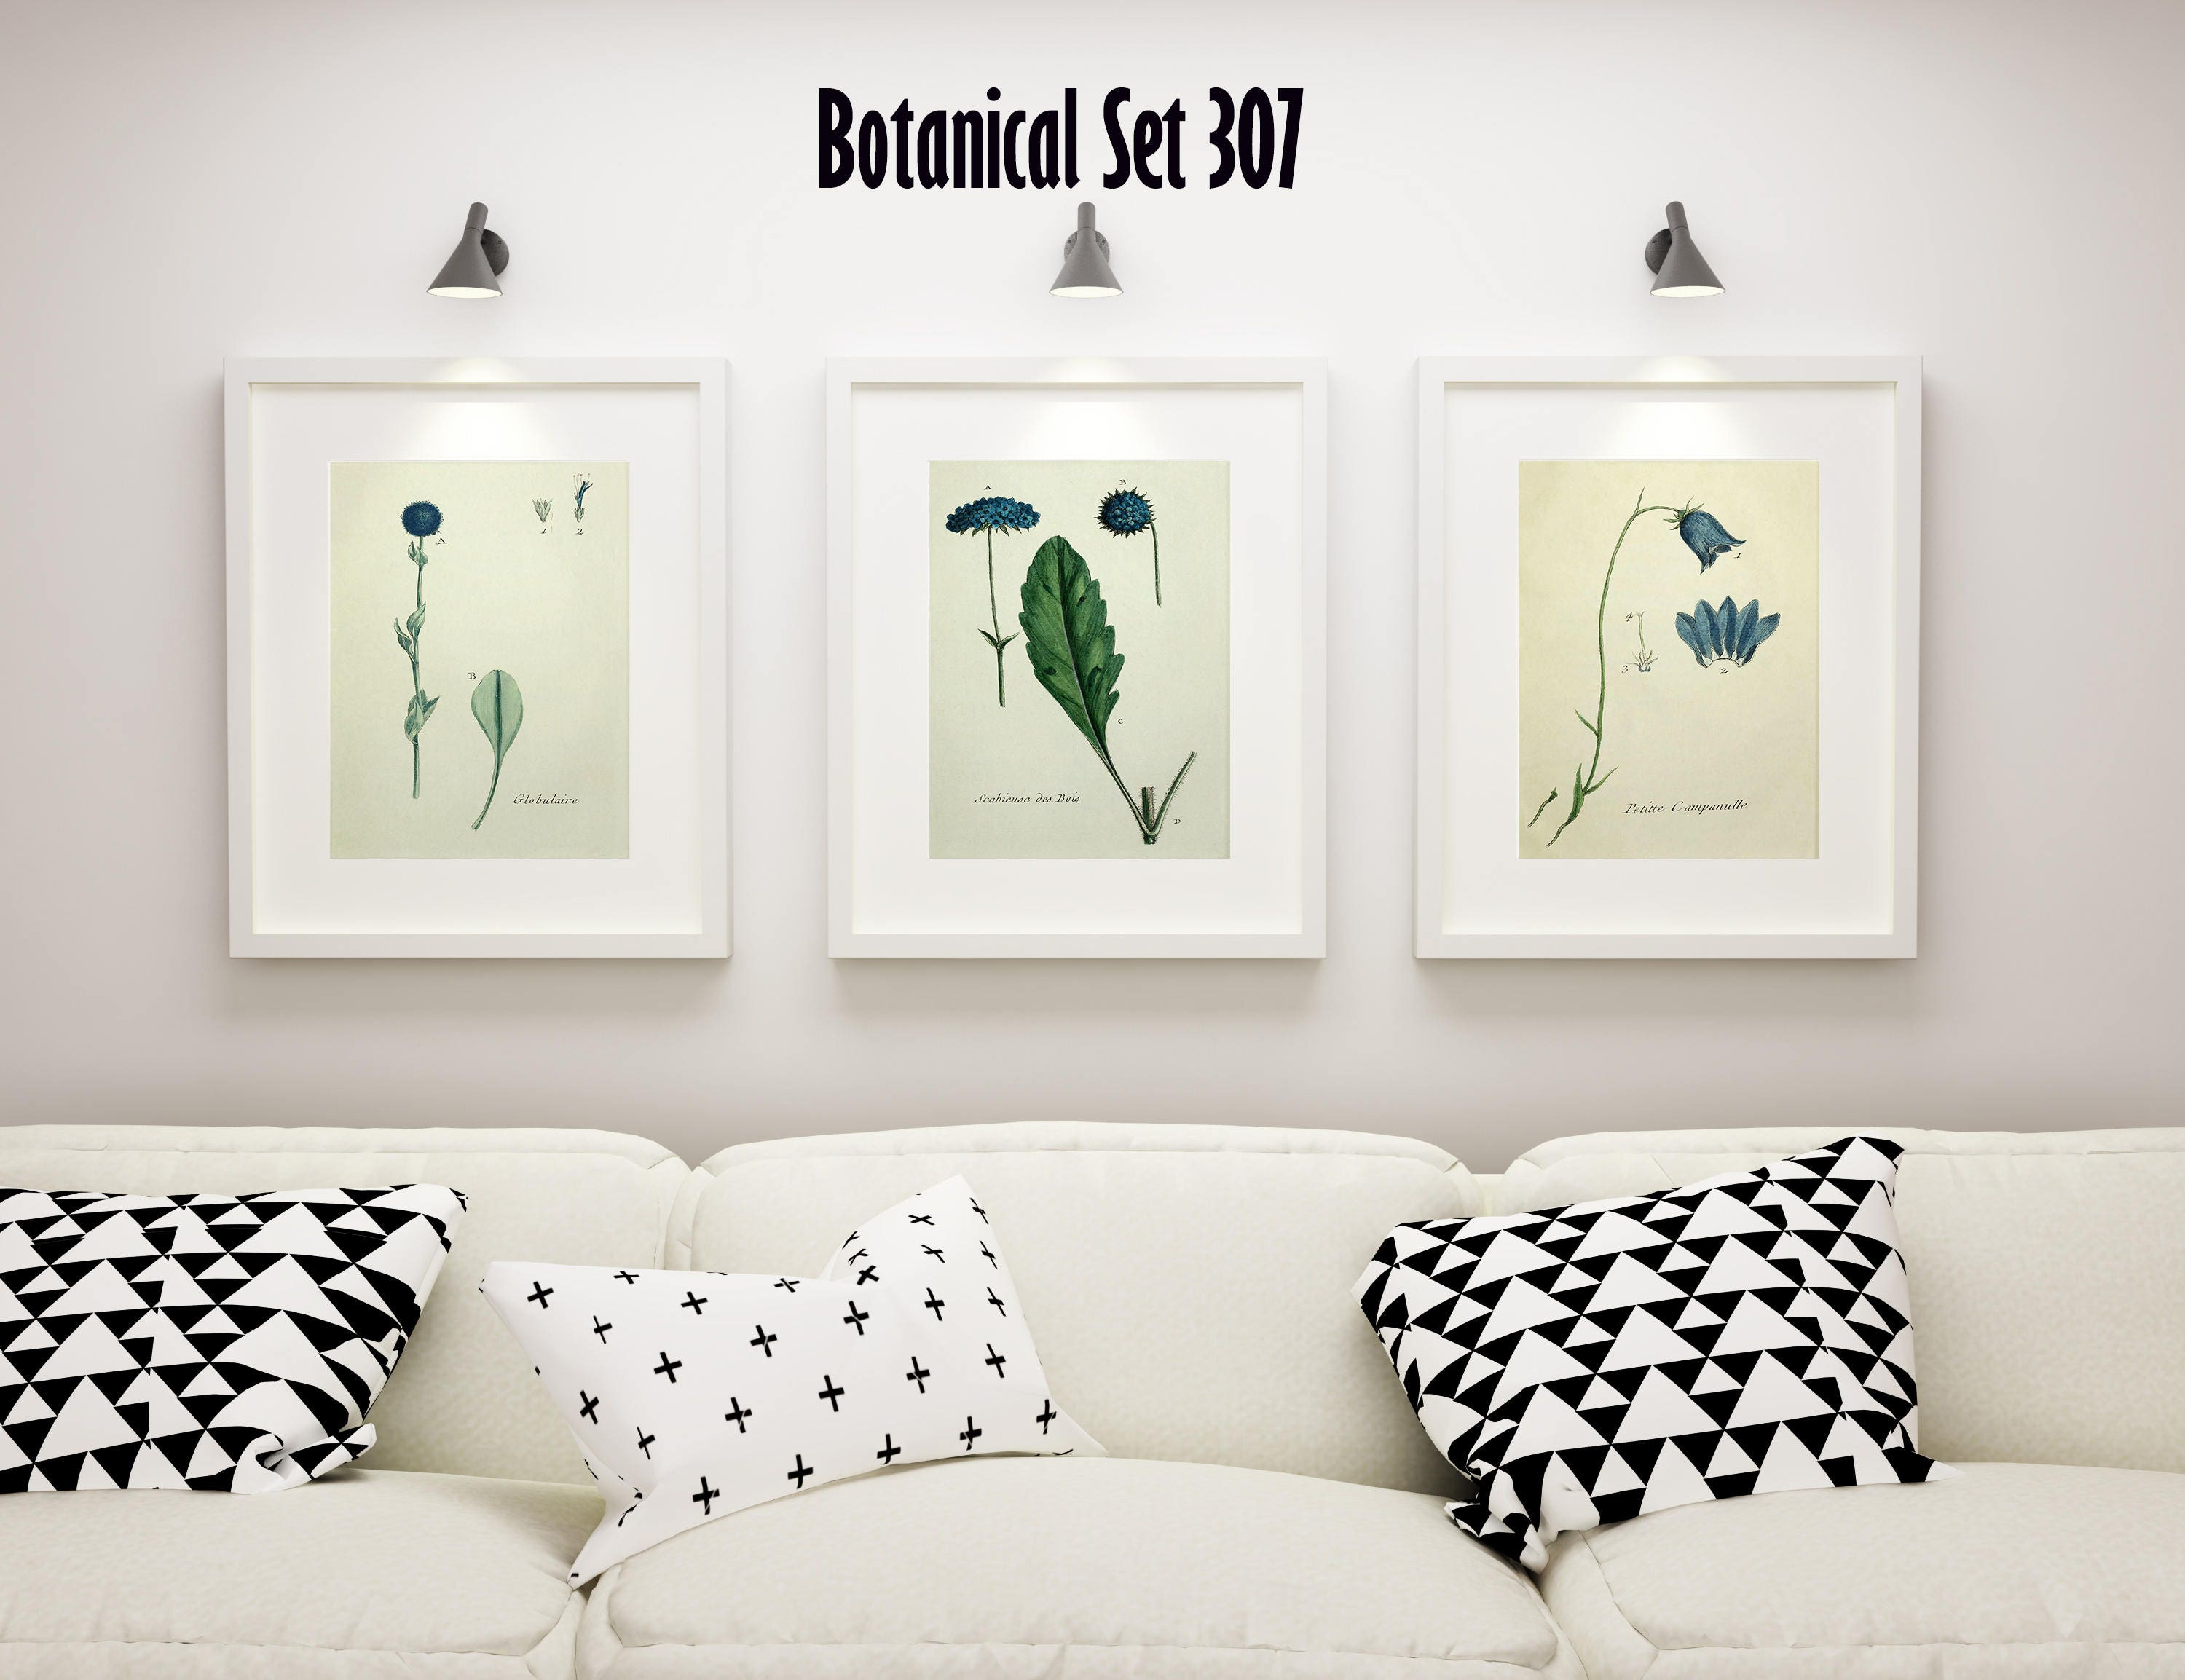 Blue Floral Botanical Wall Art Set Of 3 Prints Modern Farmhouse Decor Framed Housewarming Gift Bedroom